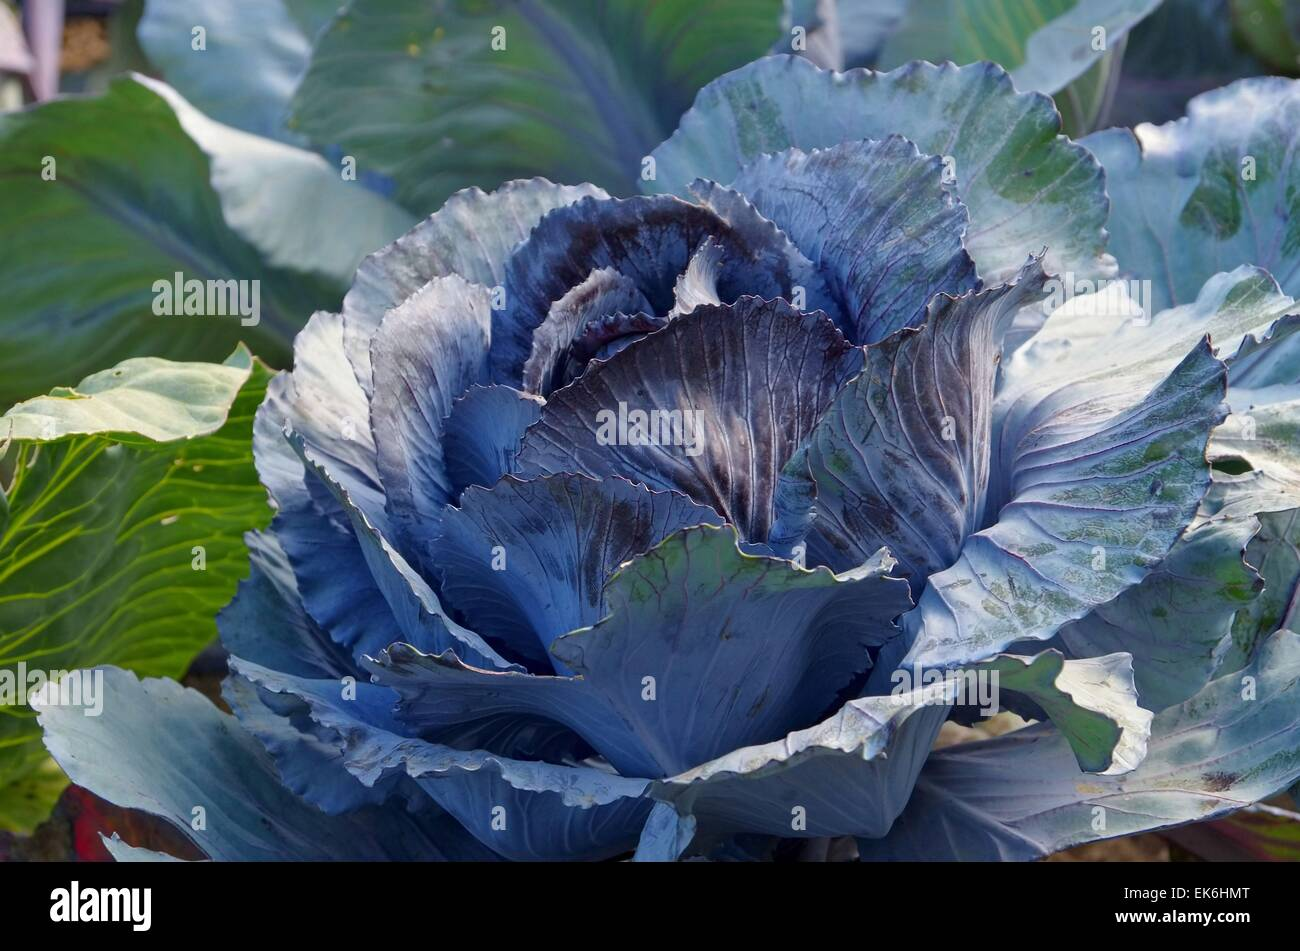 Rotkohl Feld - red cabbage field 02 - Stock Image